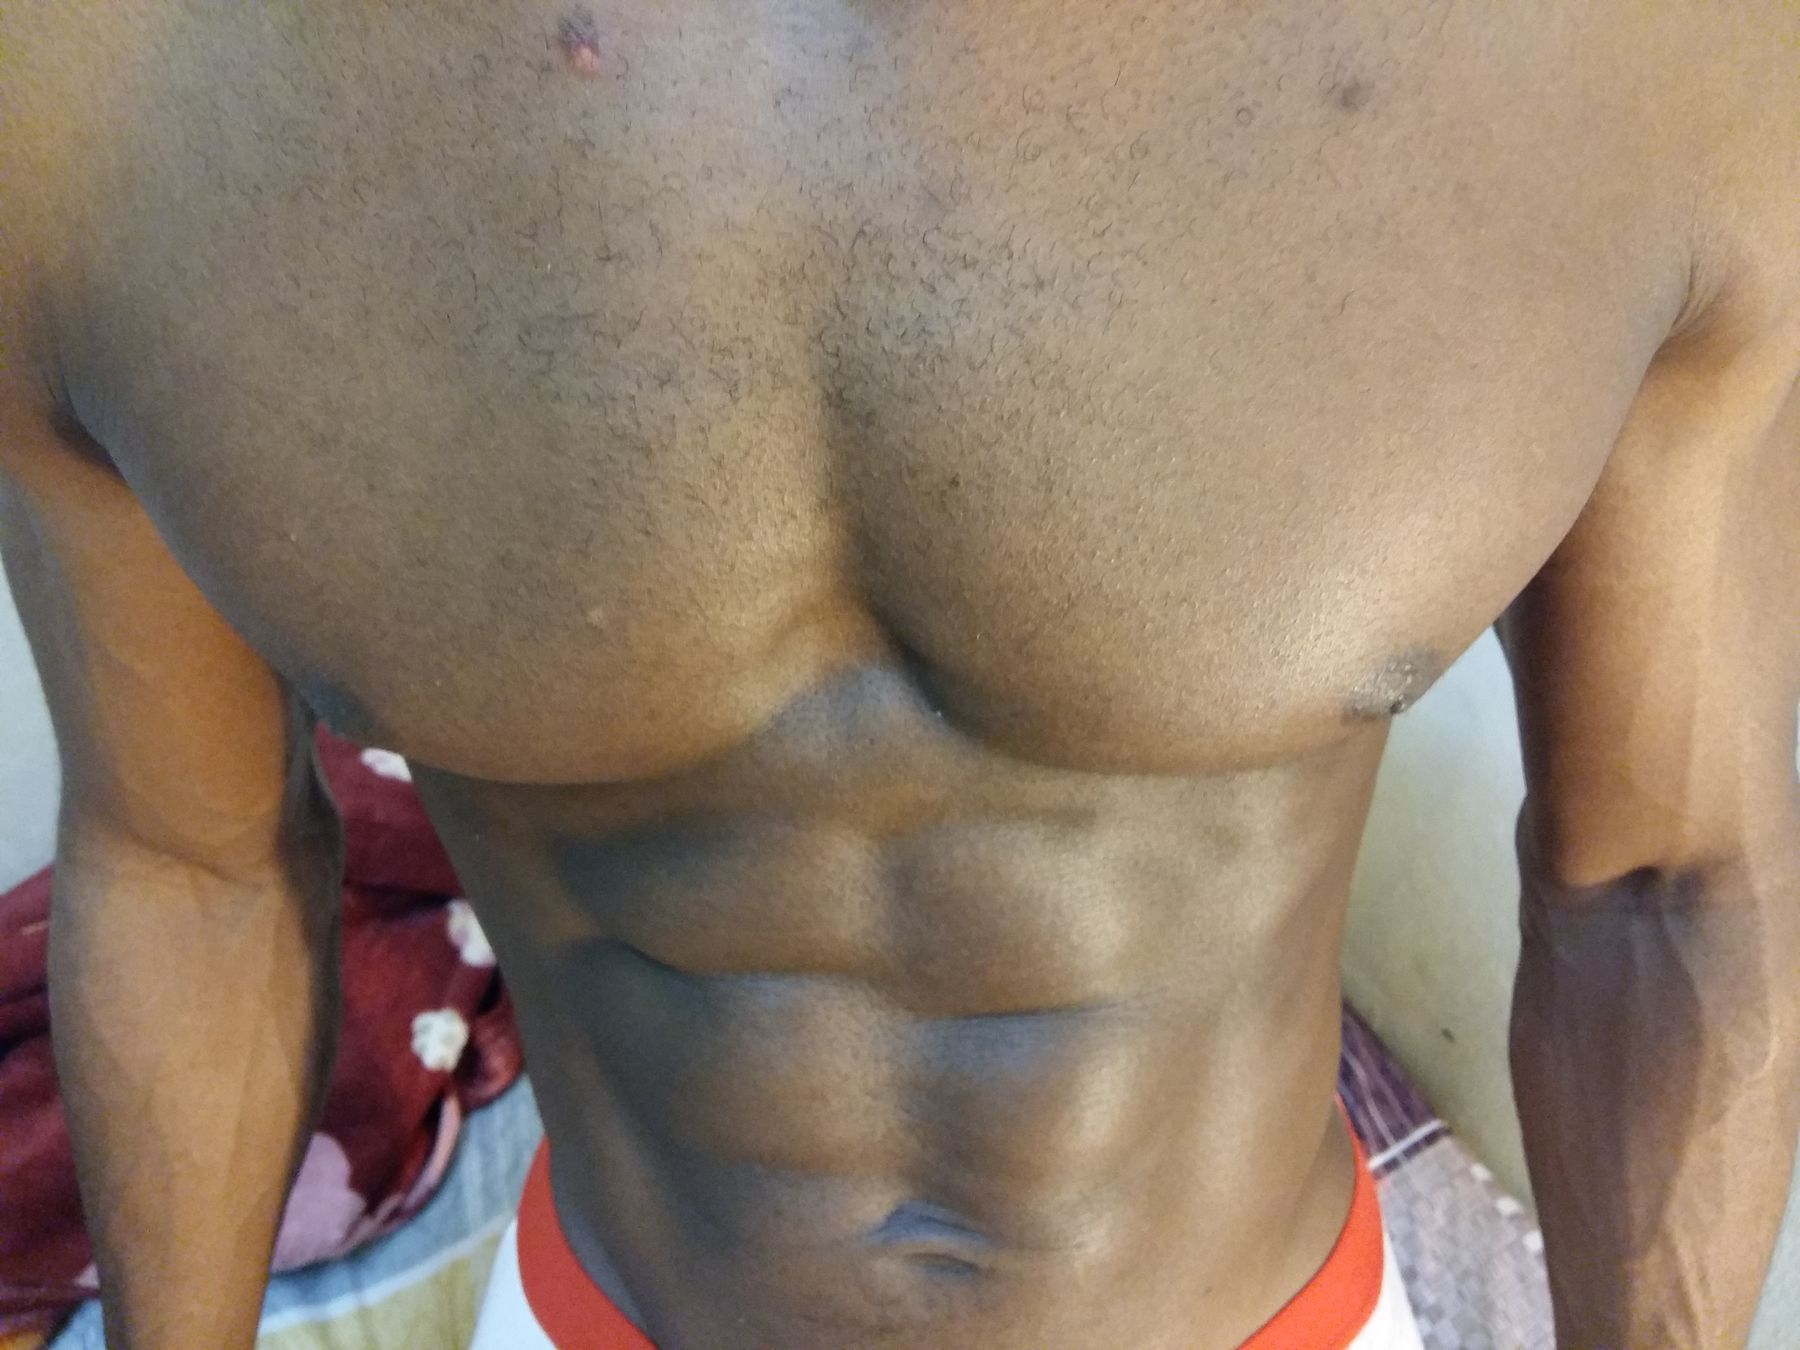 black gay escort massage escort nordjylland